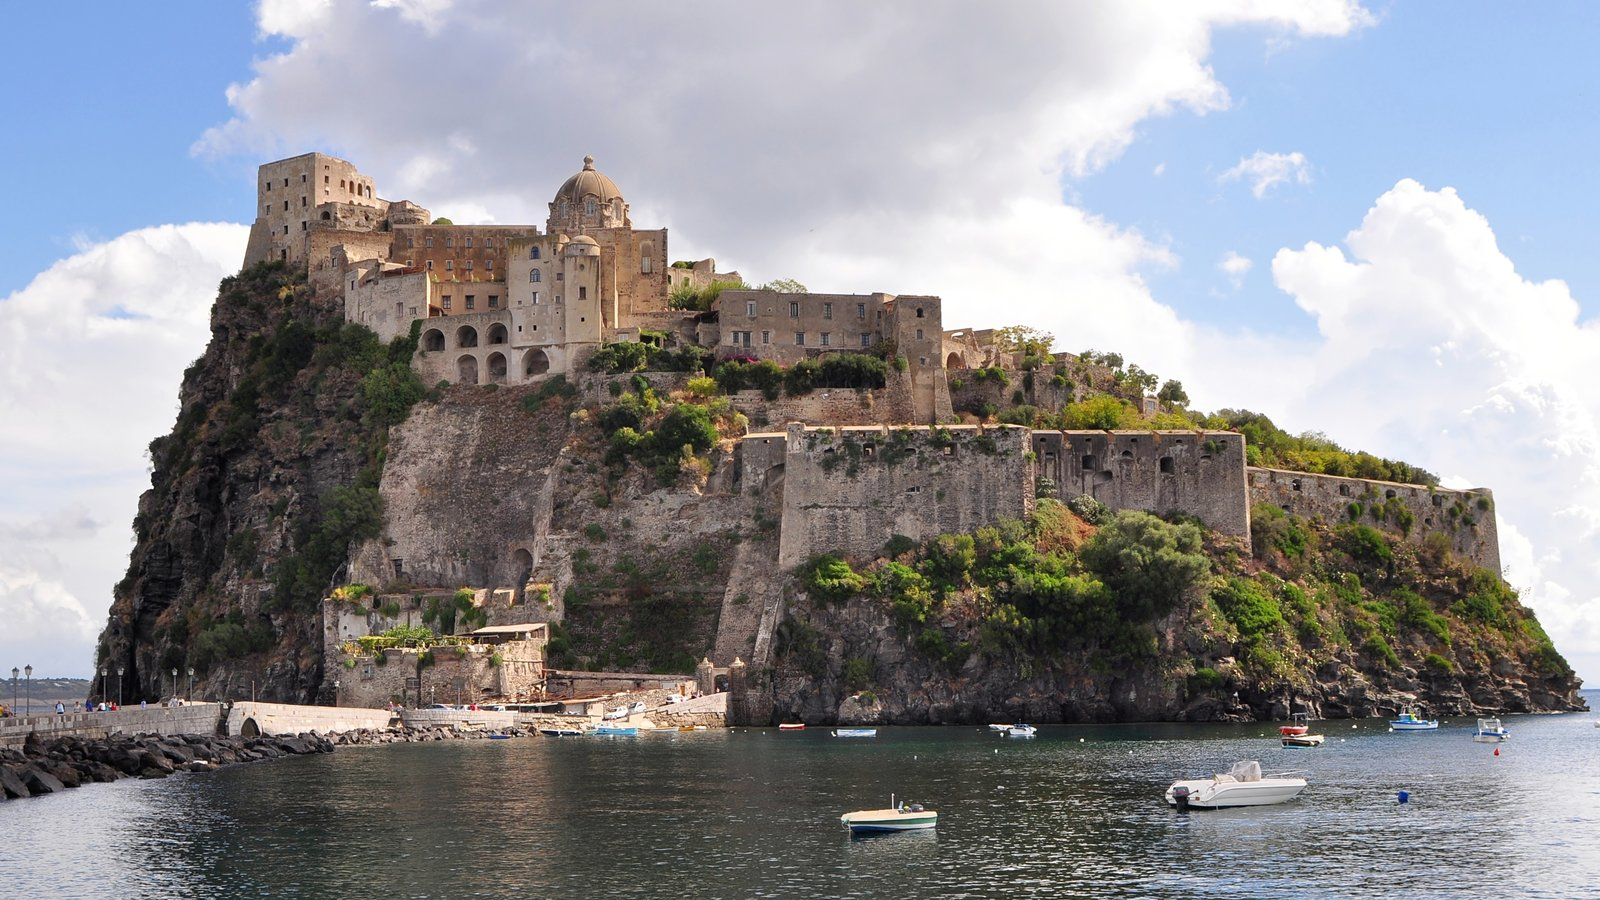 Ischia featuring chateau or palace, island views and heritage architecture